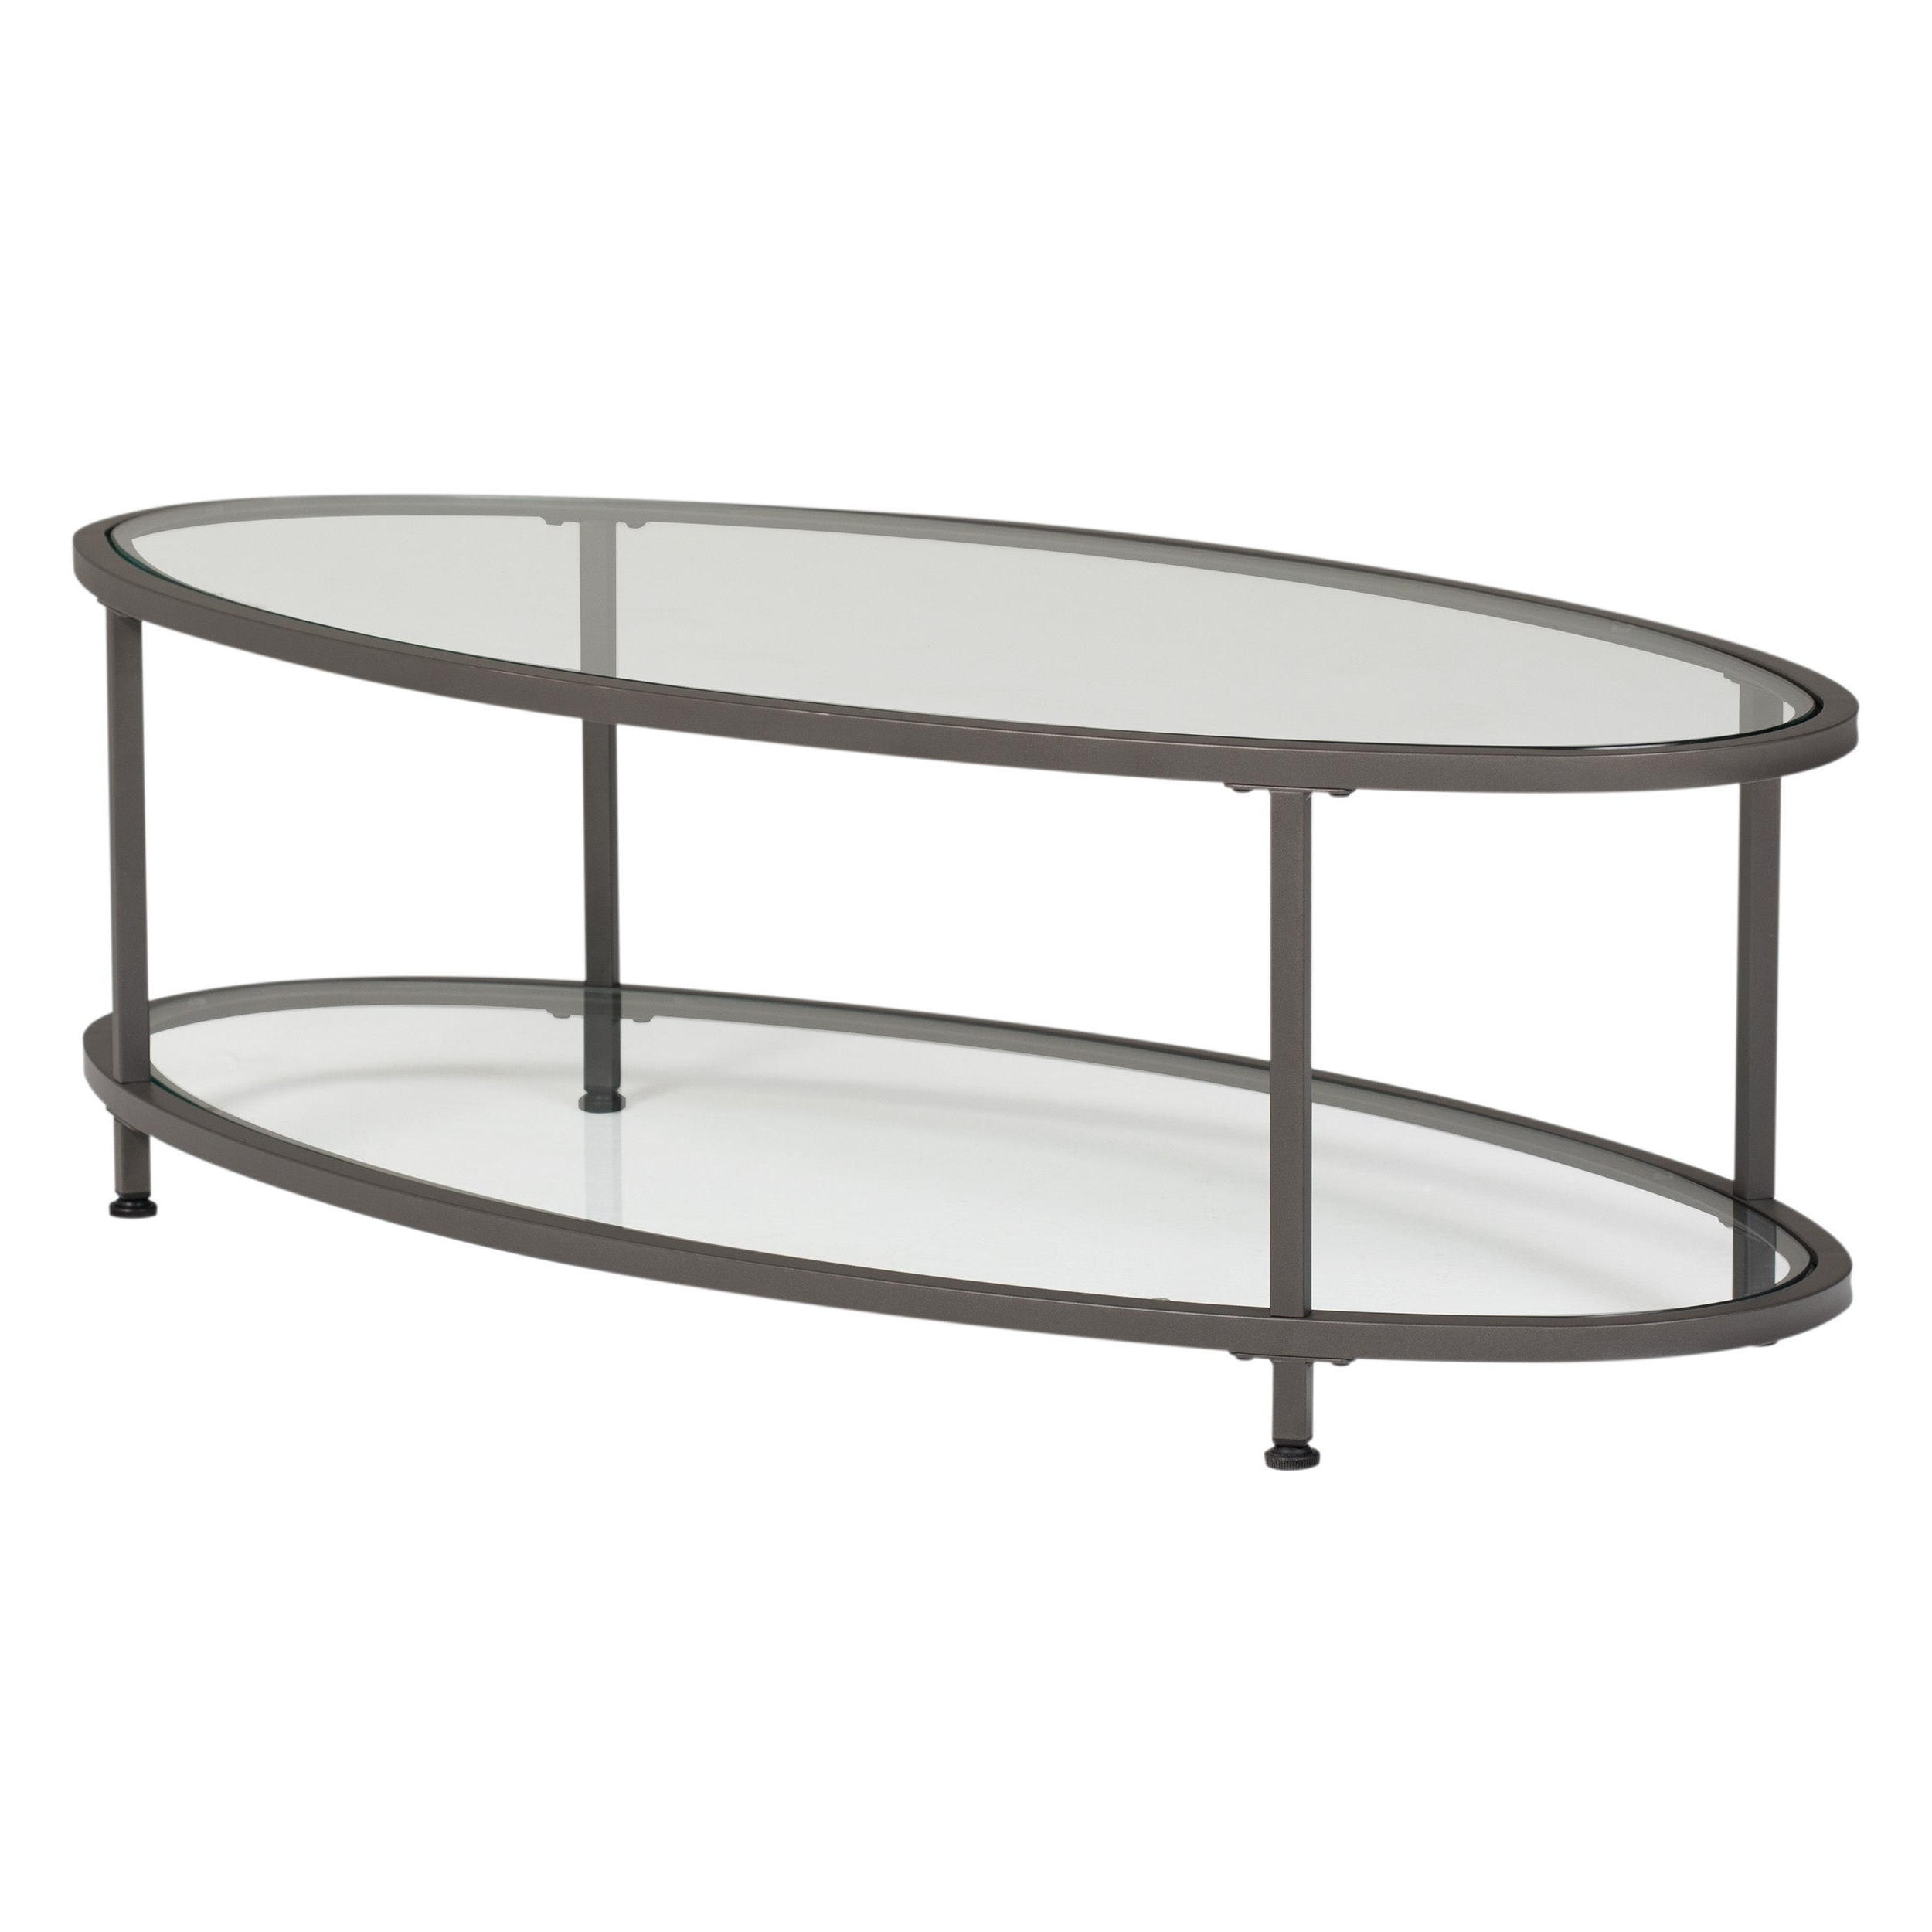 """Famous Carbon Loft Heimlich Pewter Steel/glass Round Coffee Tables In Carbon Loft Heimlich 48"""" Oval Coffee Table (View 13 of 20)"""